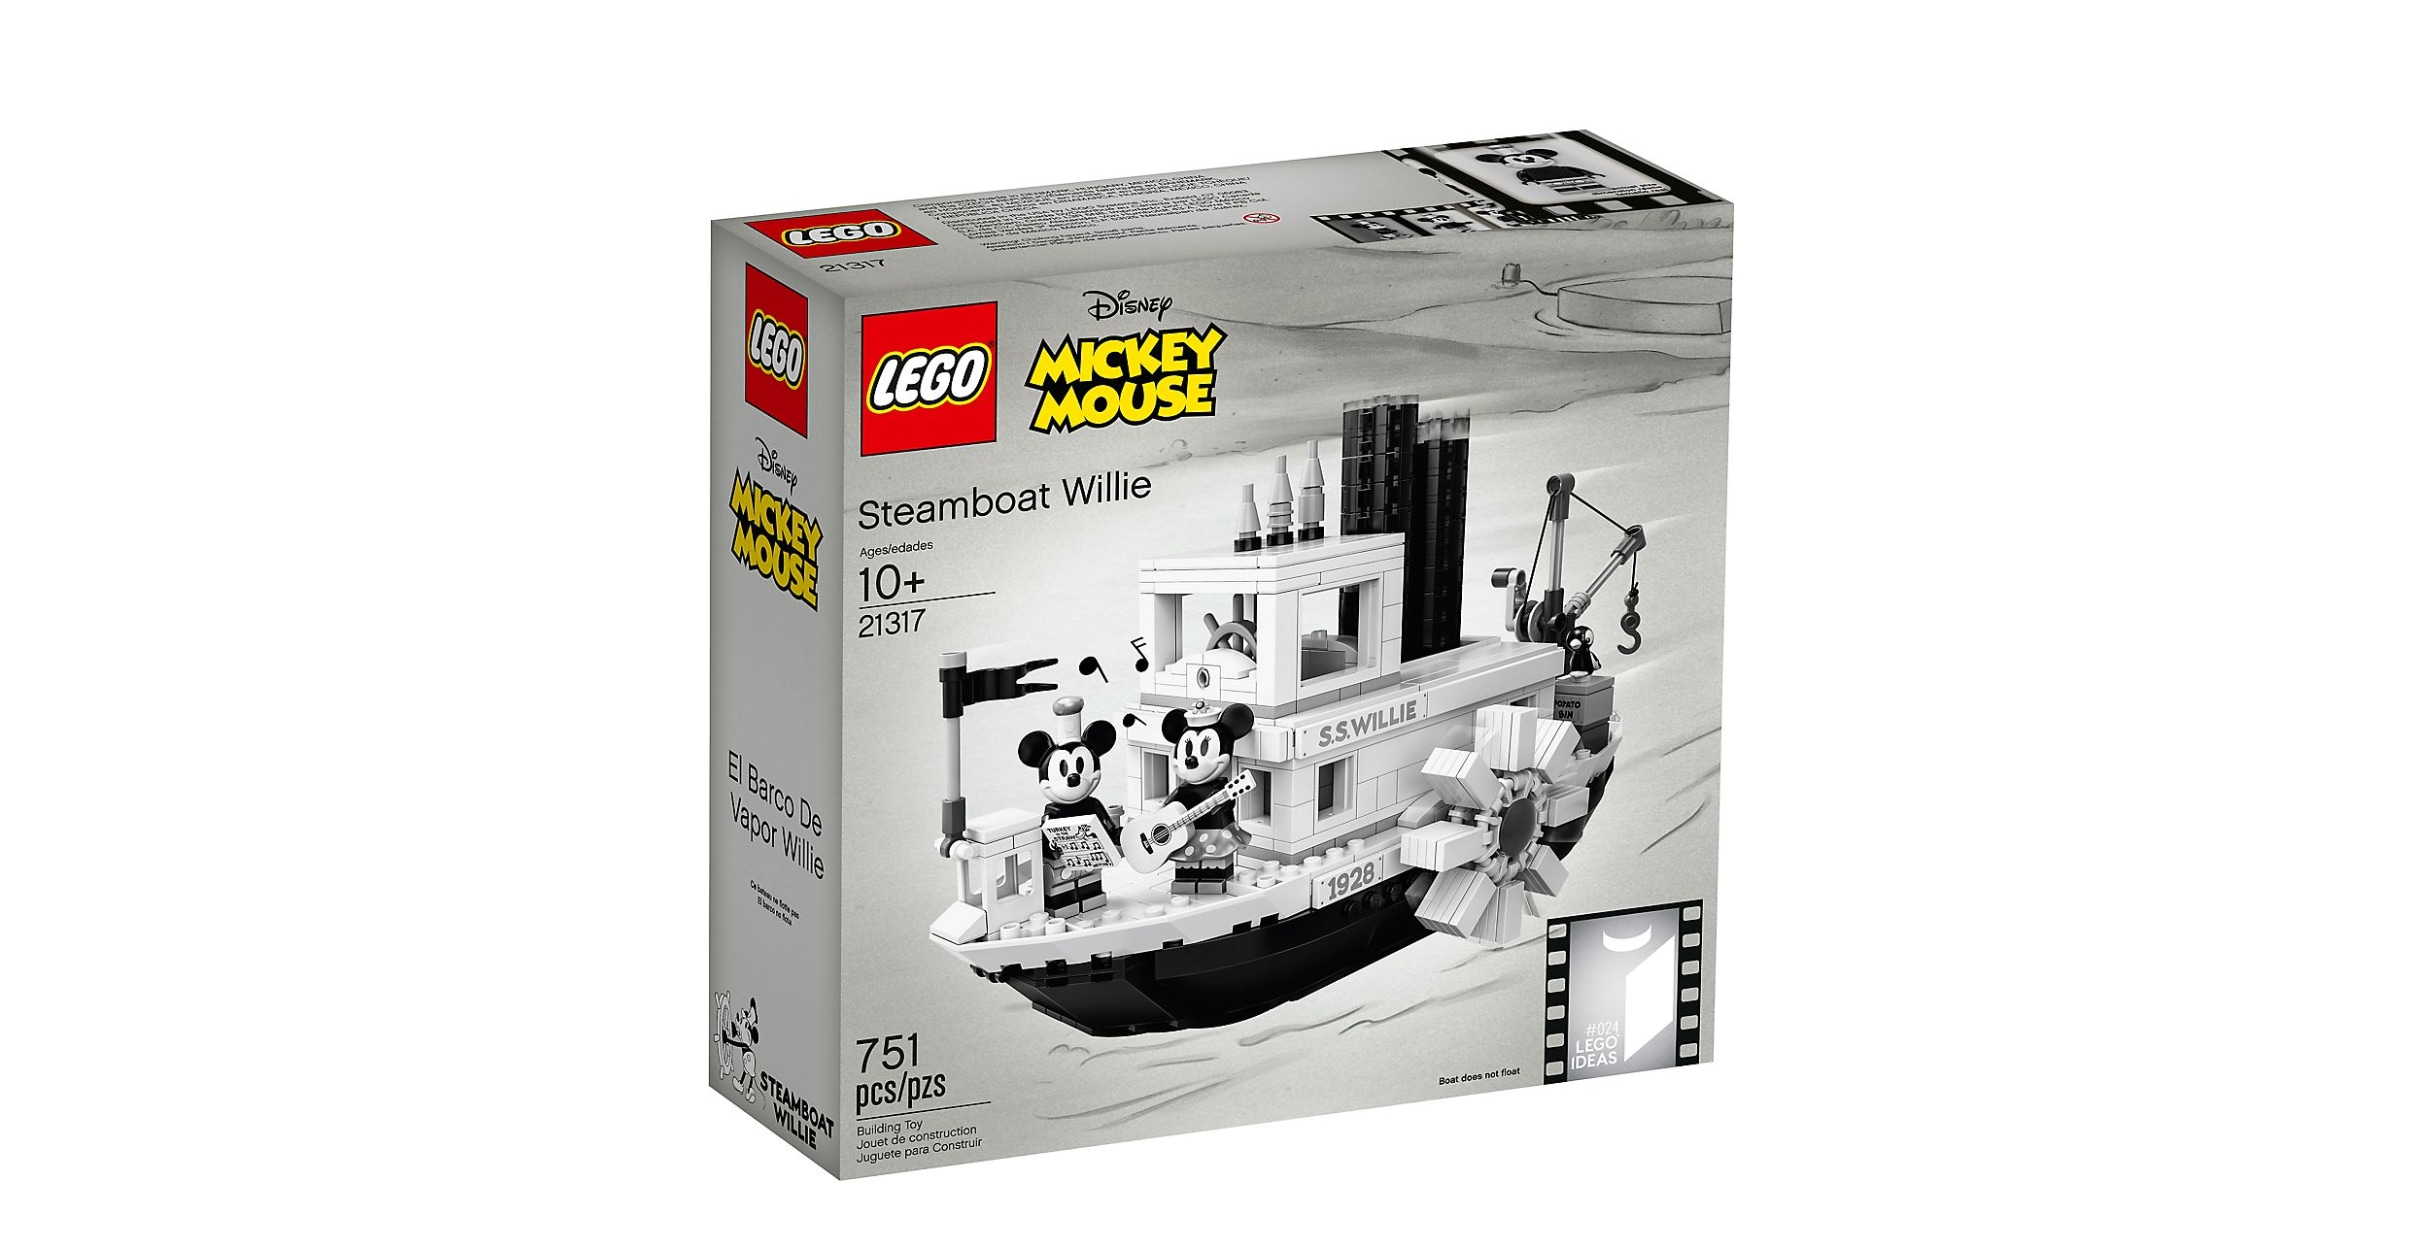 LEGO Steamboat Willie 21317 (2)